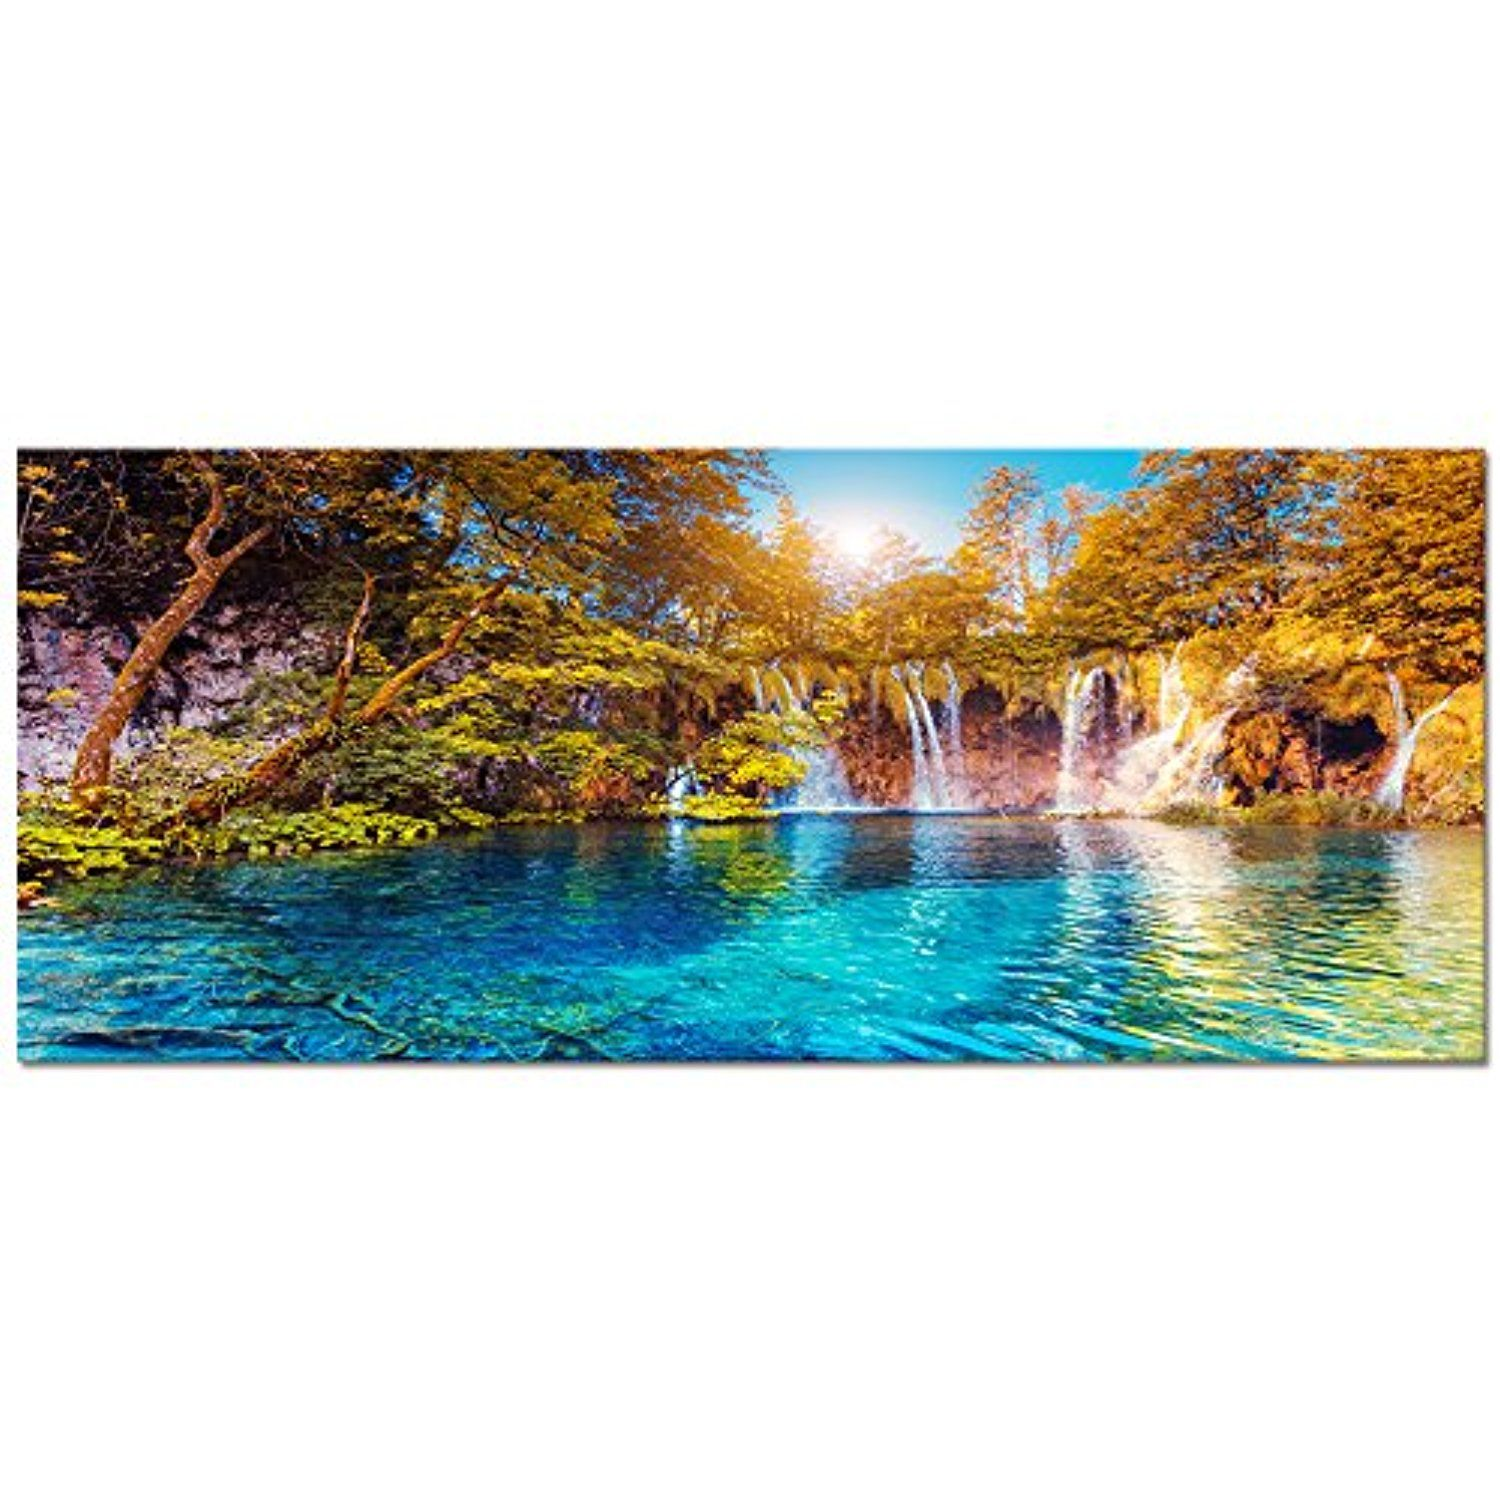 Visual Art Decor Xlarge Nature Autumn Forest Landscape Canvas Wall Art Blue Crystal Lake Scenery Painting P Scenery Paintings Forest Landscape Landscape Canvas